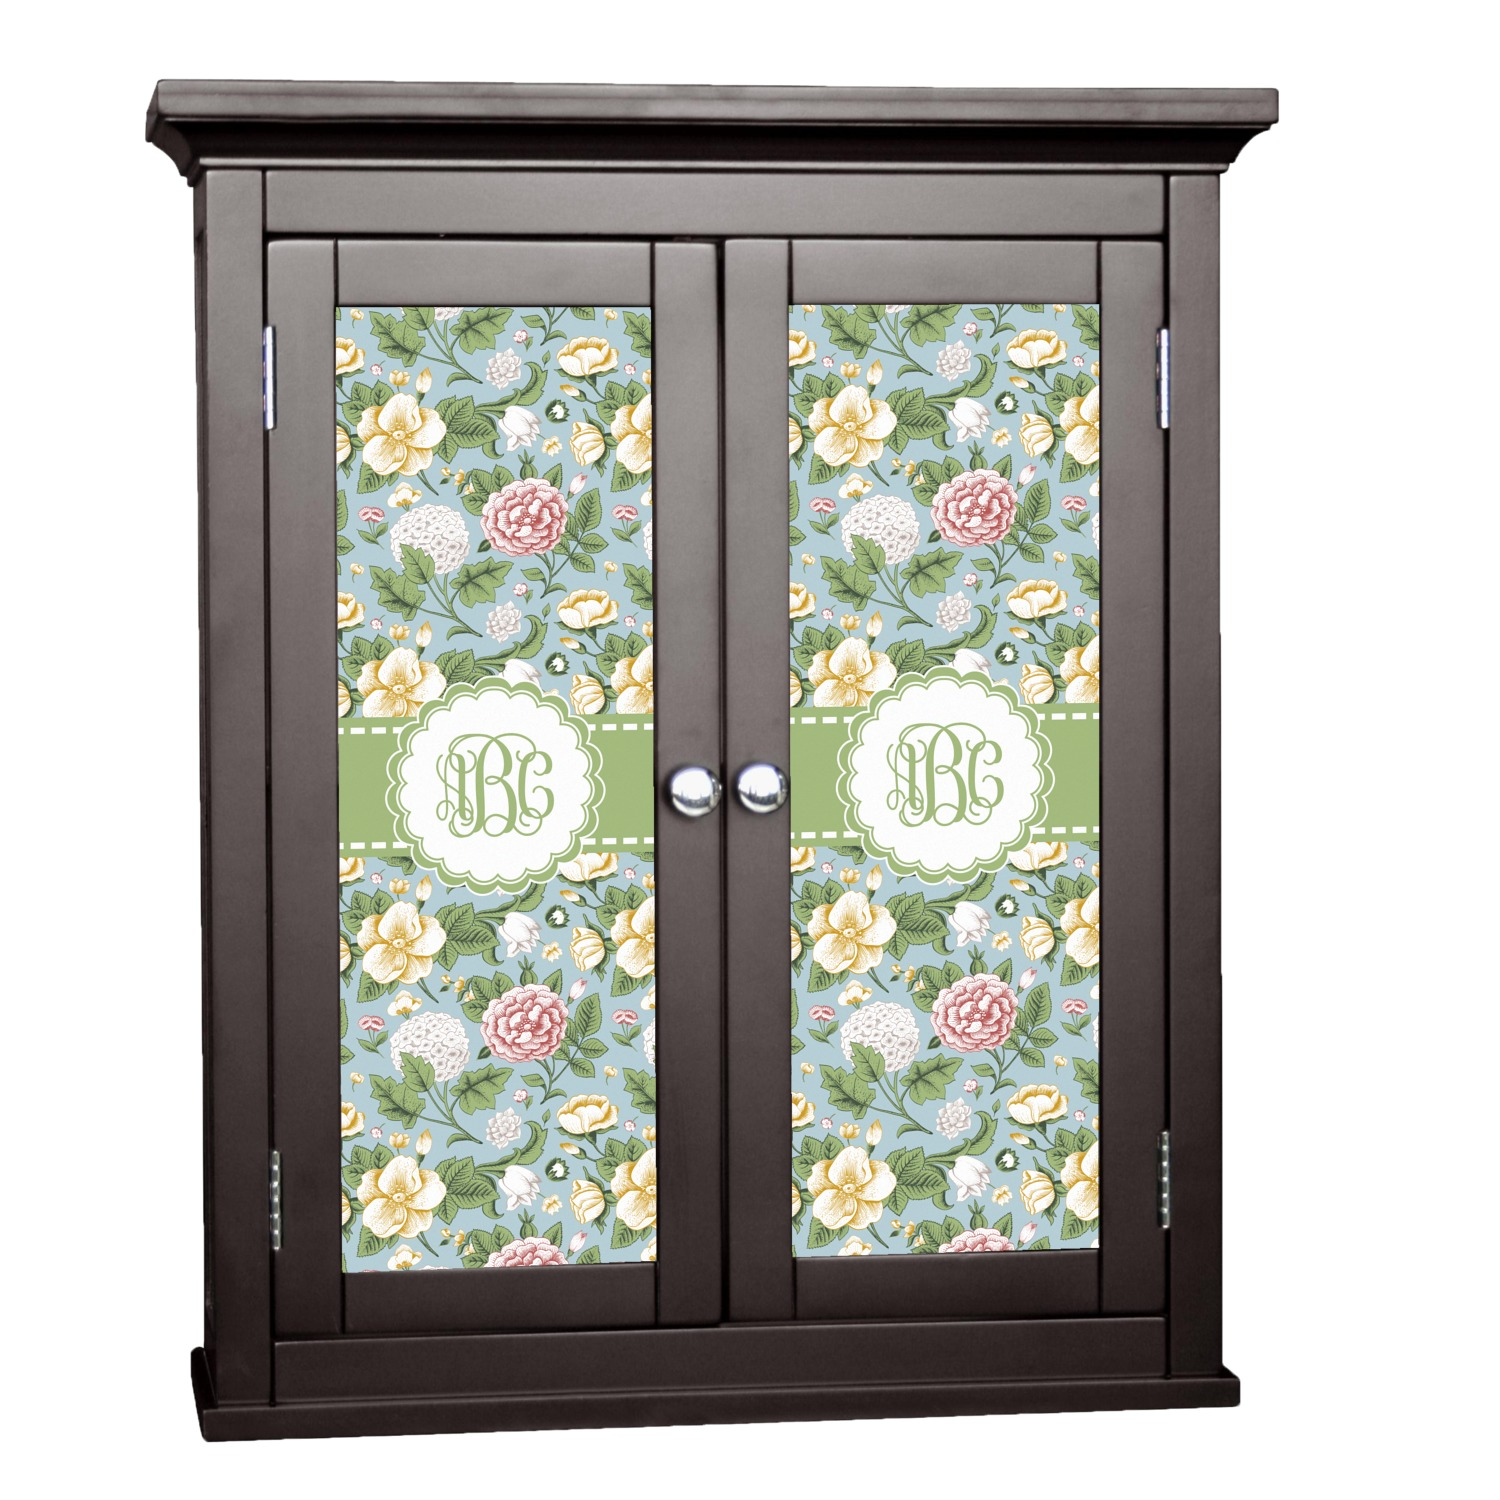 Vintage Floral Cabinet Decal Large Personalized